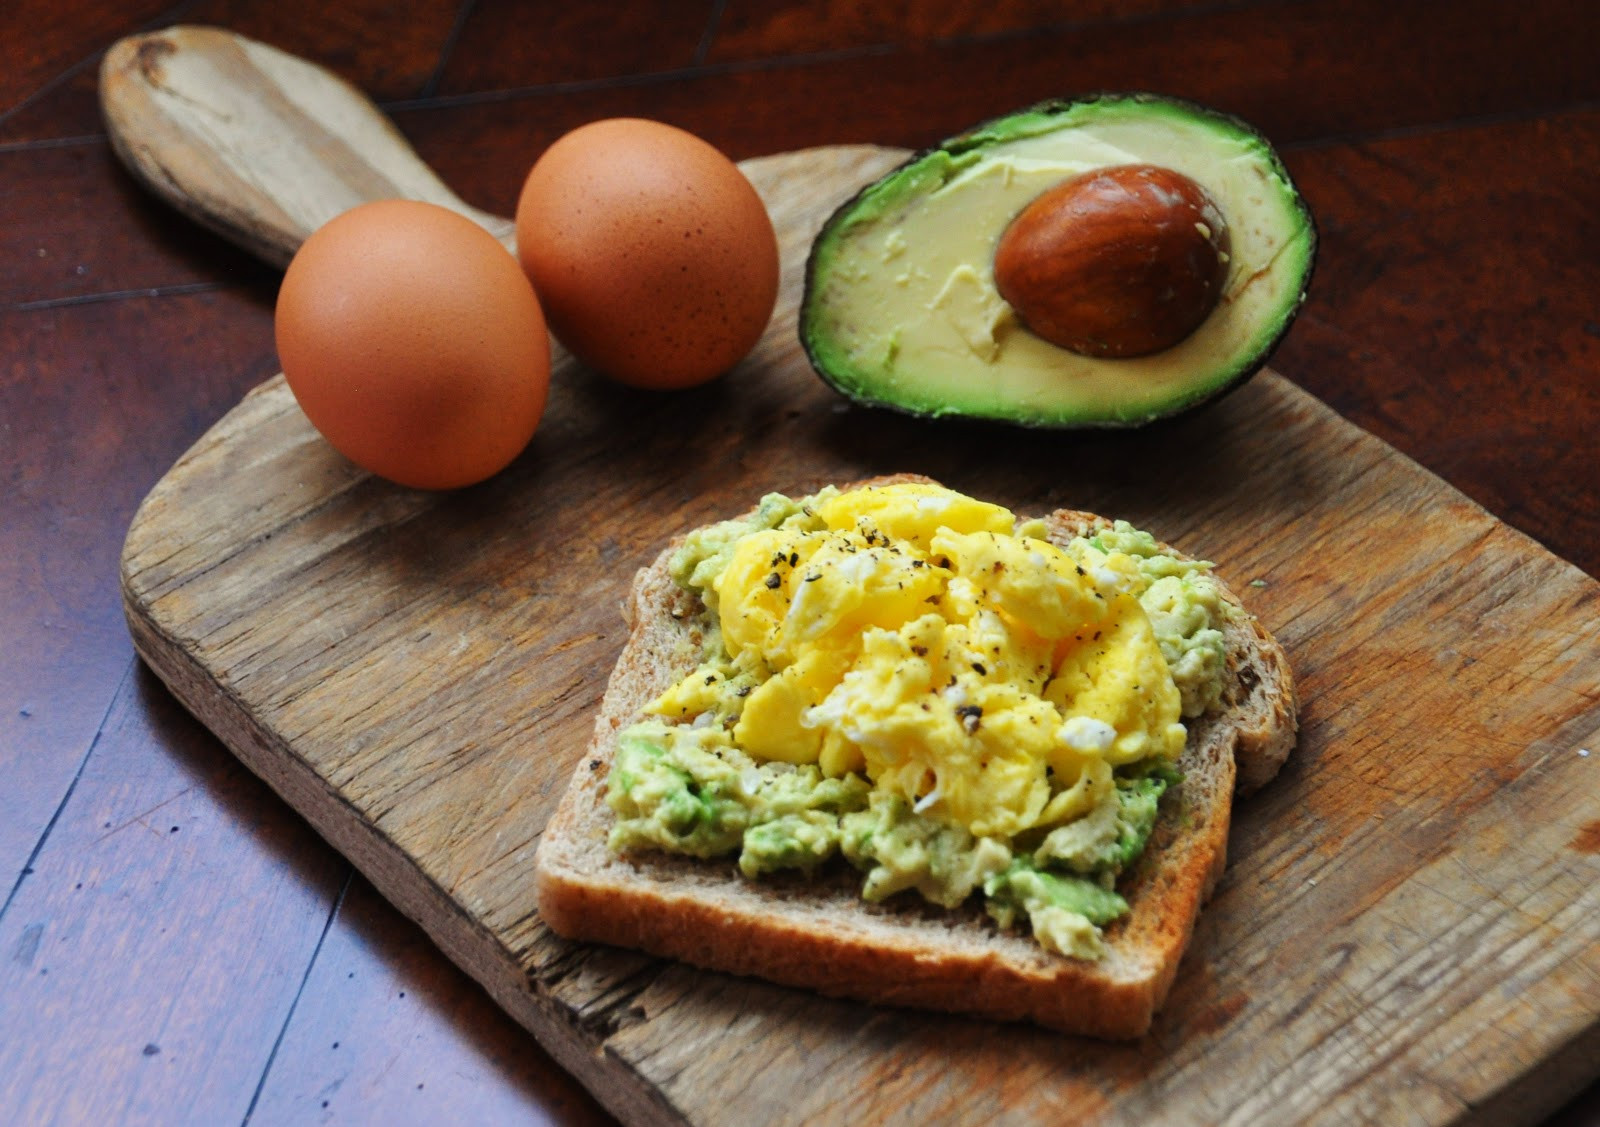 Healthy Breakfast With Eggs And Avocado  A LA GRAHAM EGG AND AVOCADO TOAST CLEAN EATING